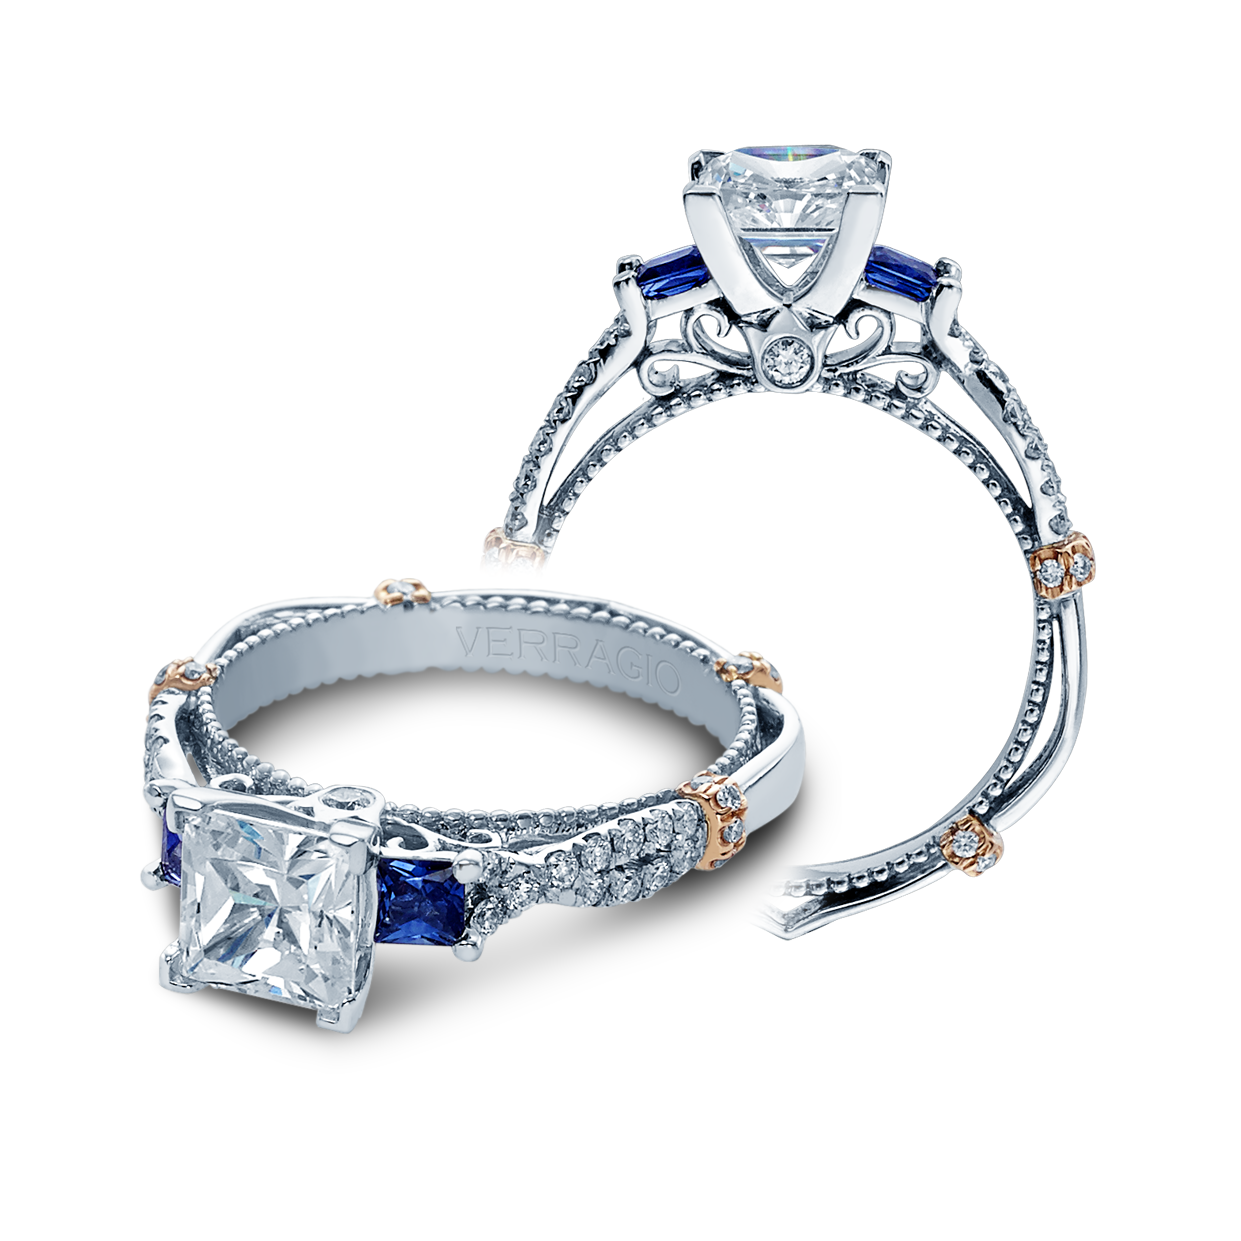 Verragio Parisian CLDL129P Engagement Ring